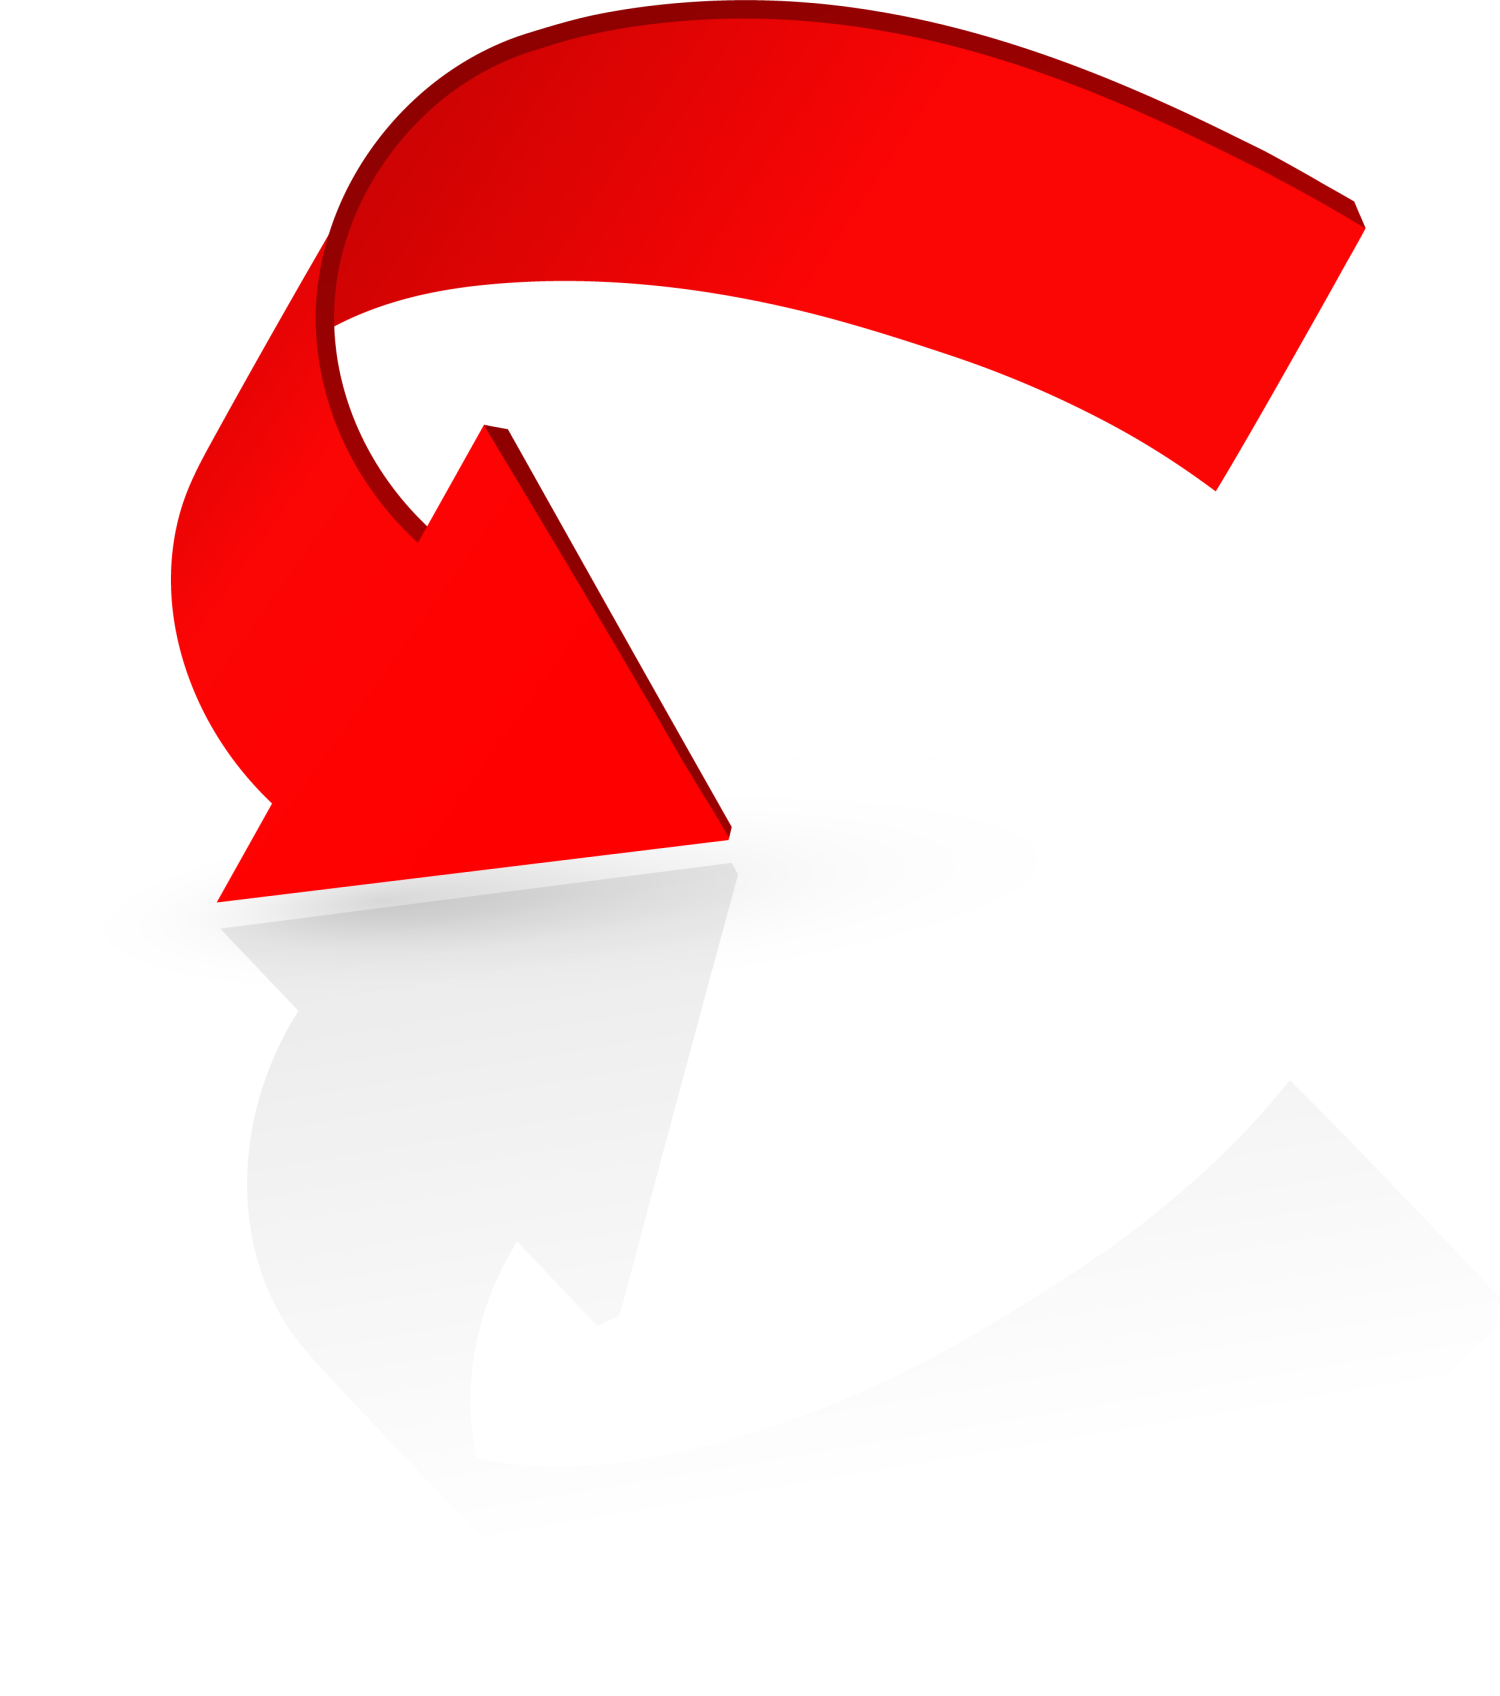 Arrow png red. Logo concise transprent free